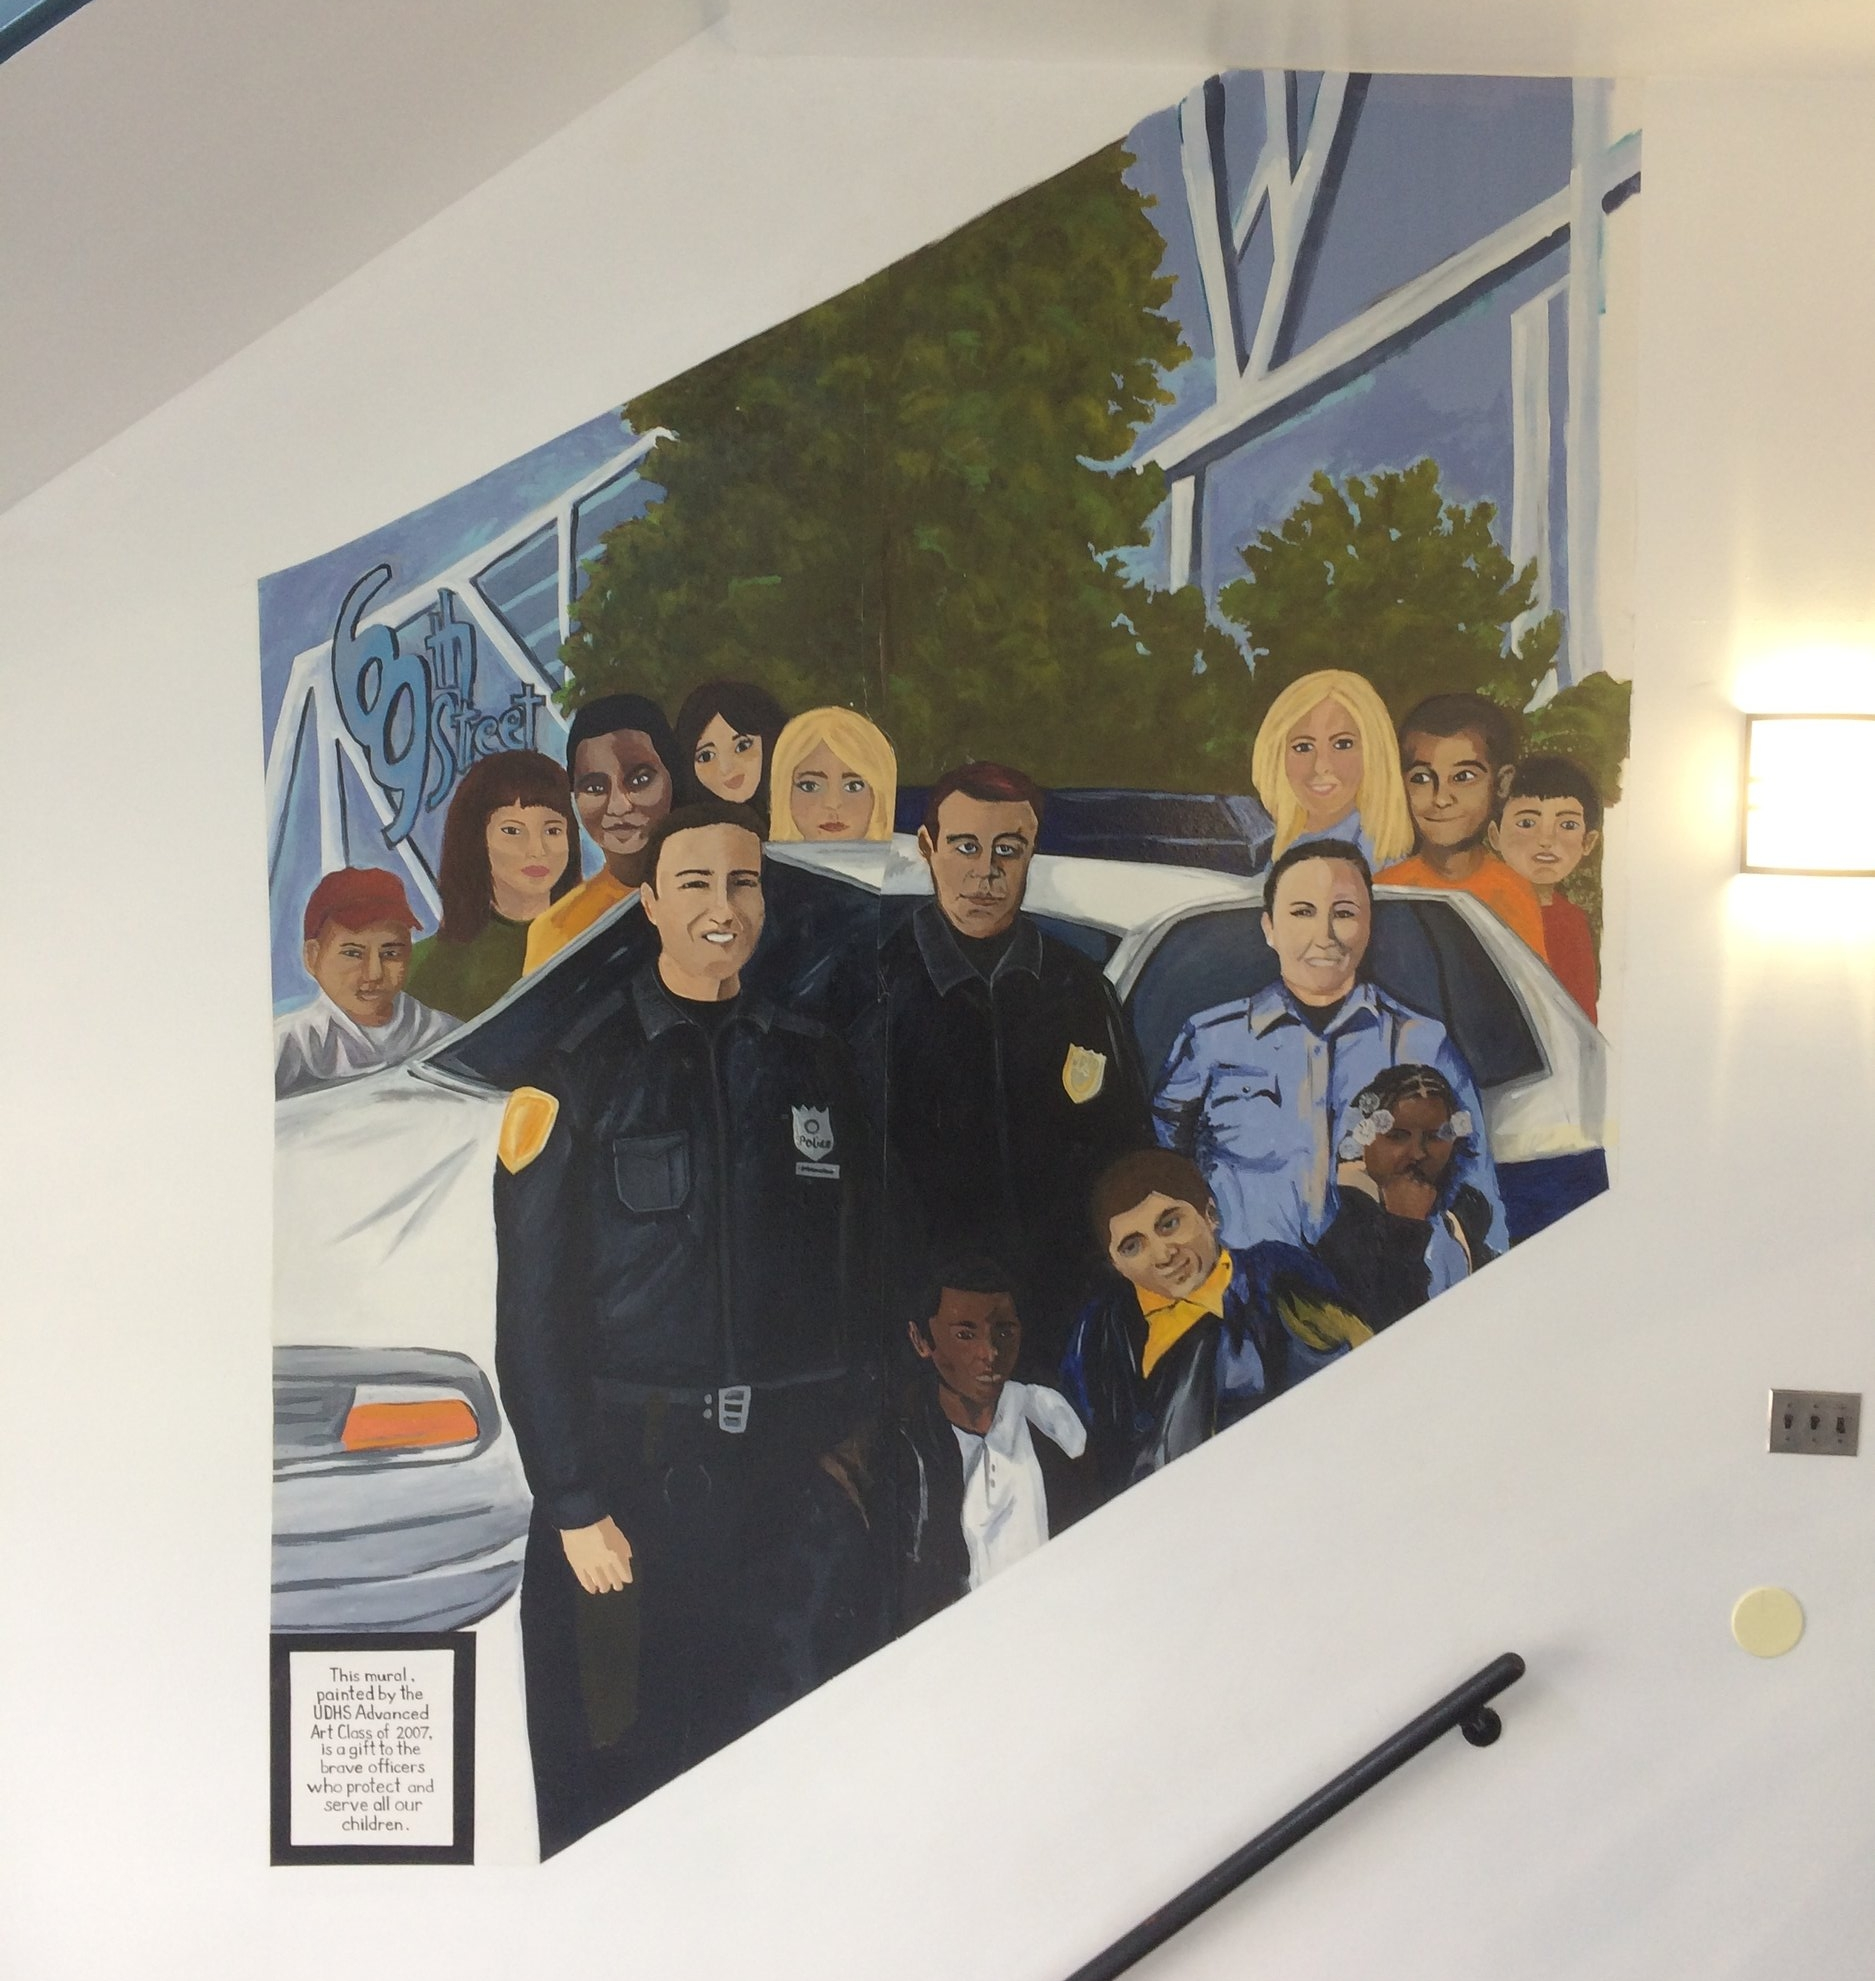 Mural of officers and youth painted by young residents of Upper Darby (photo by Mitchell Bloom)